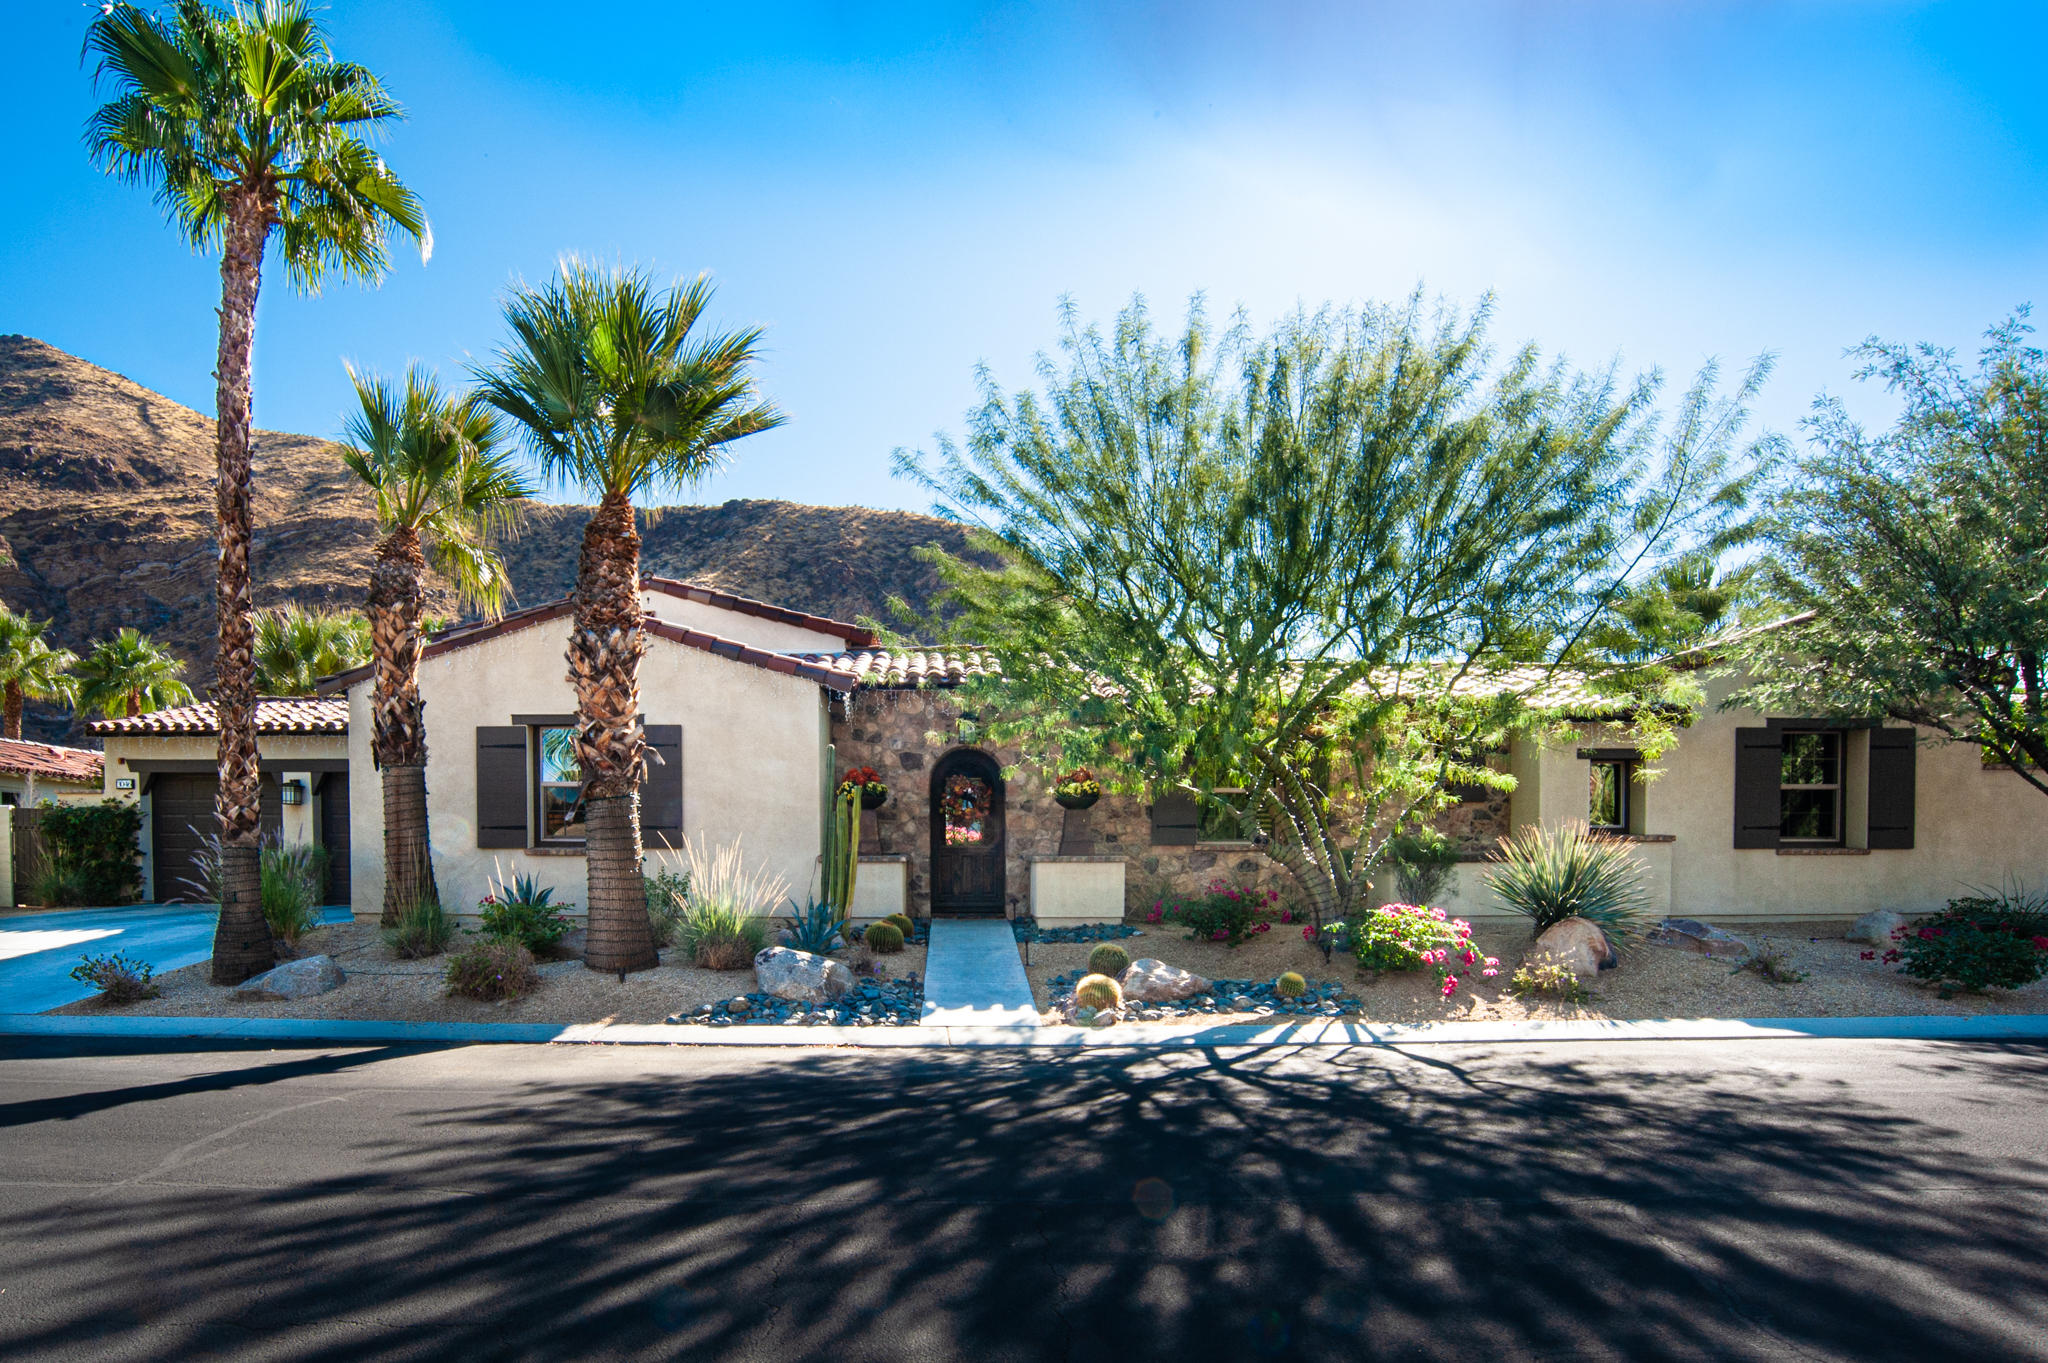 Photo of 3046 Arroyo Seco, Palm Springs, CA 92264